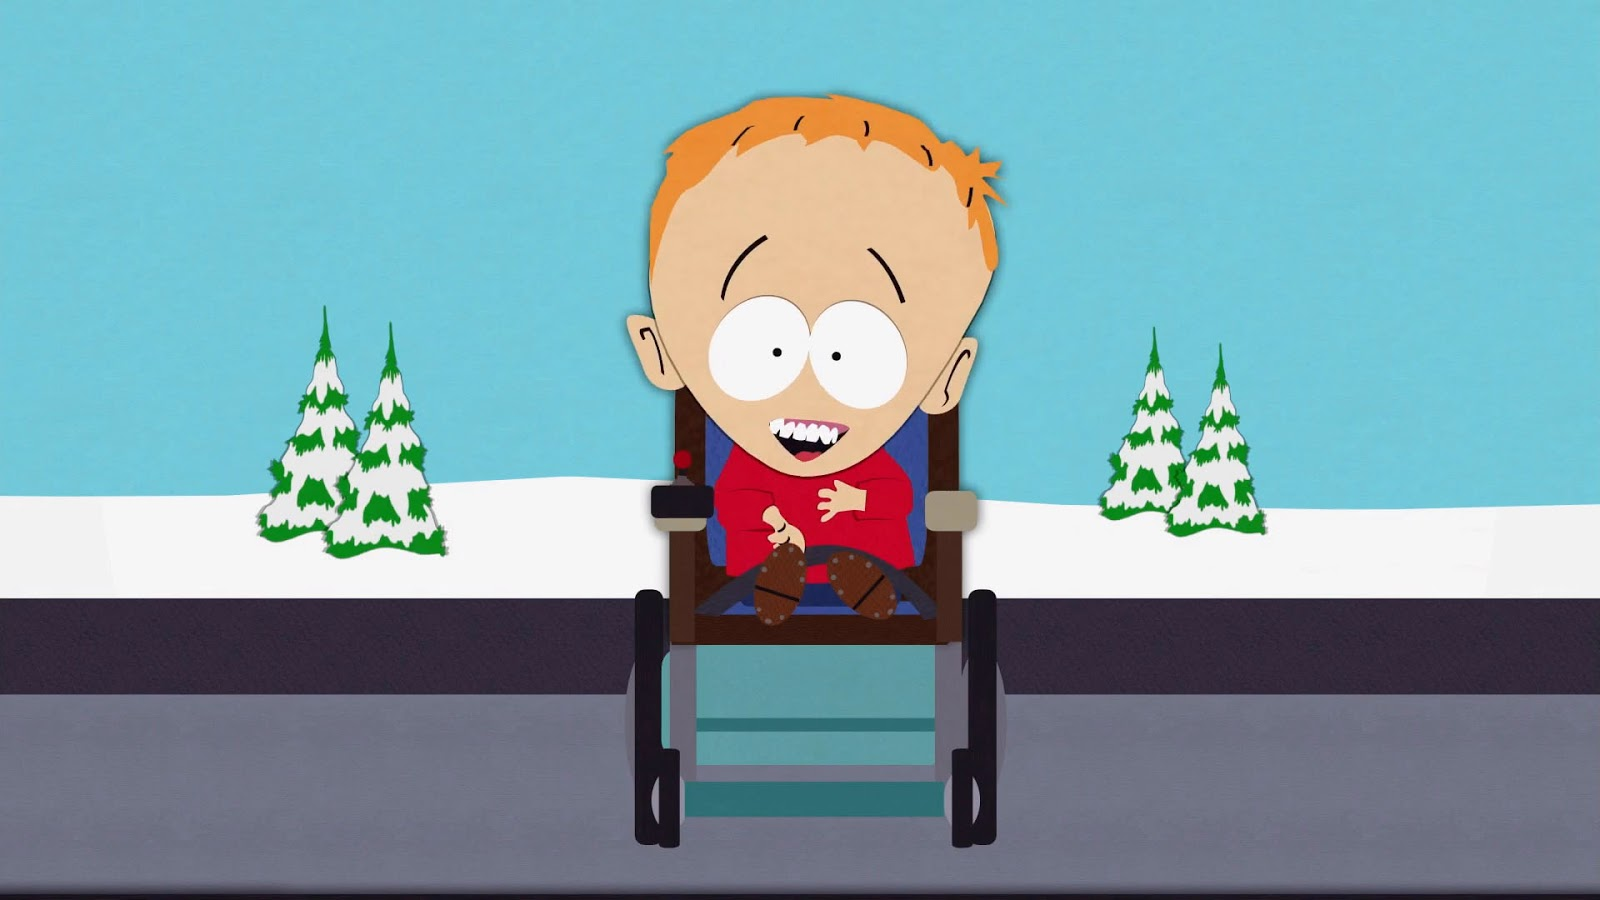 Ryan S Blog South Park Timmy 2000 Hd Screen Captures